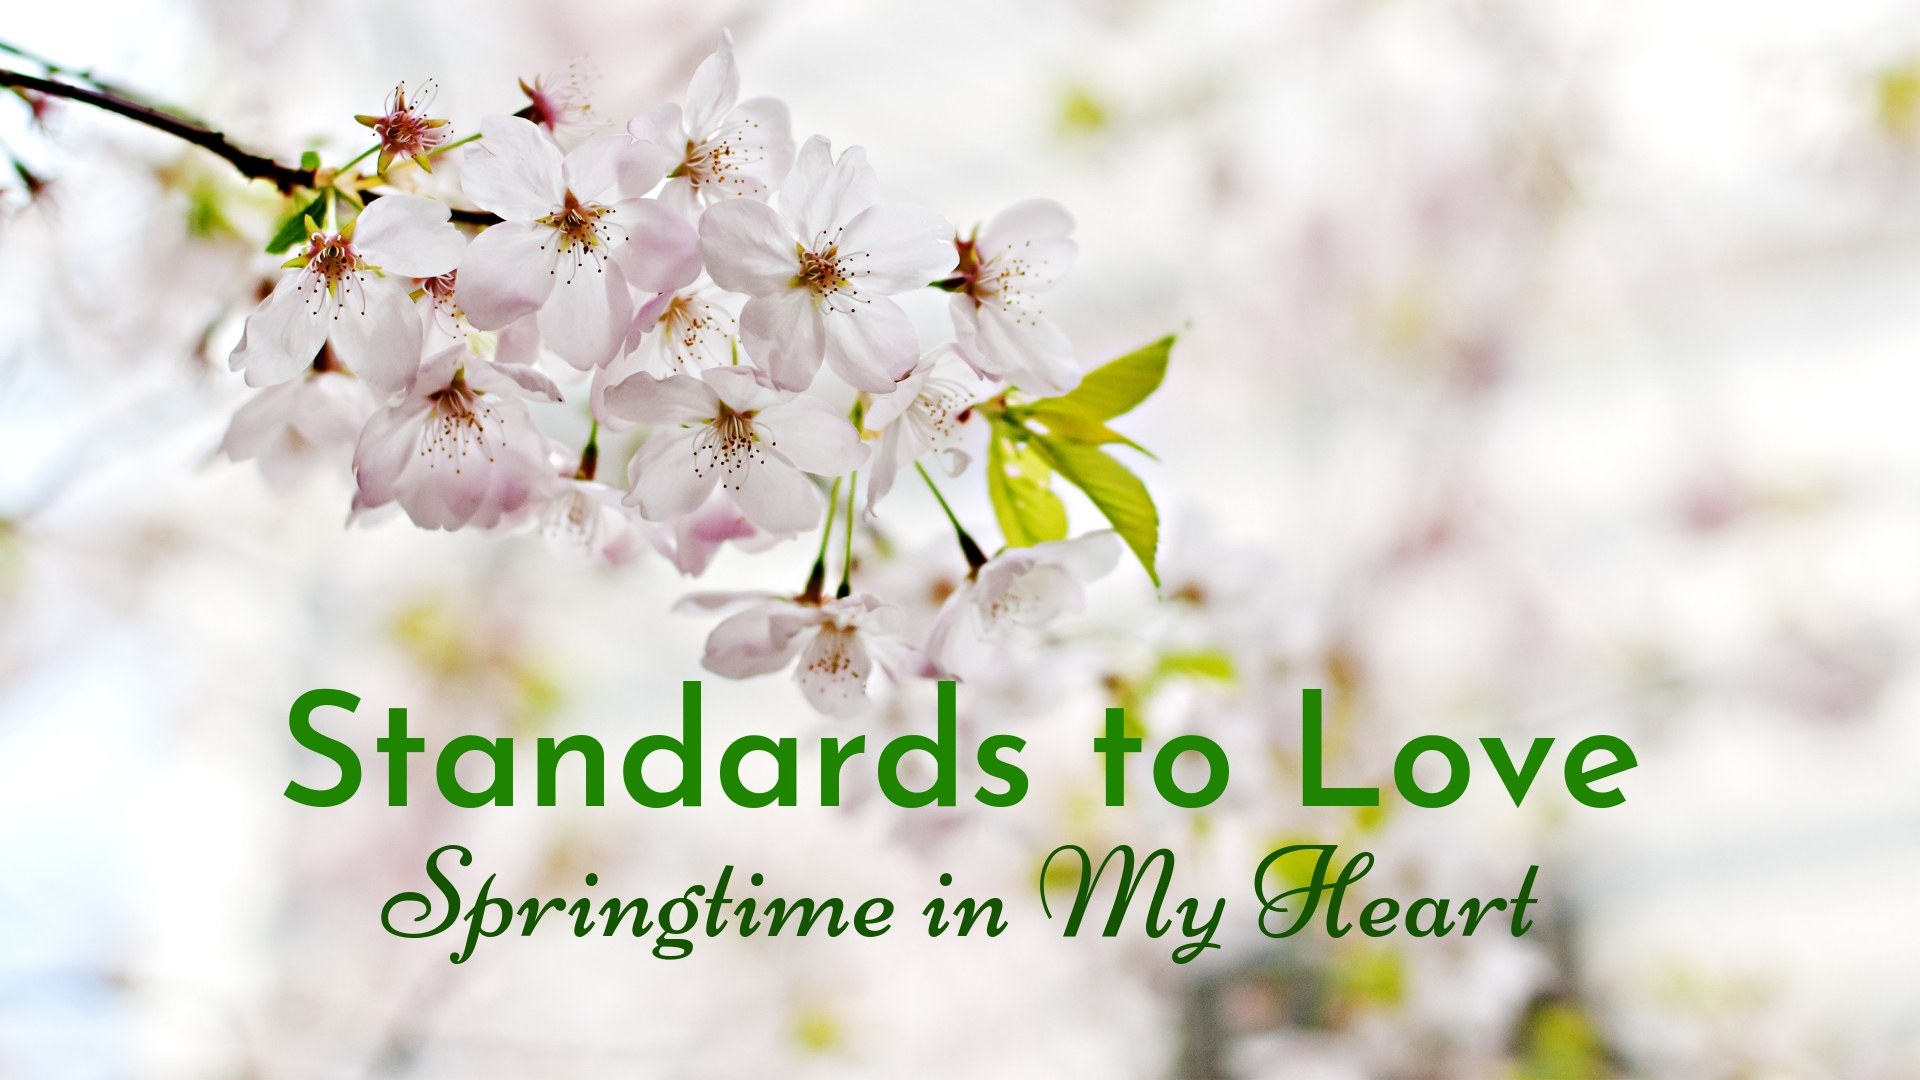 banner-standards-to-love-springtime-in-my-heart-01 (2).jpg